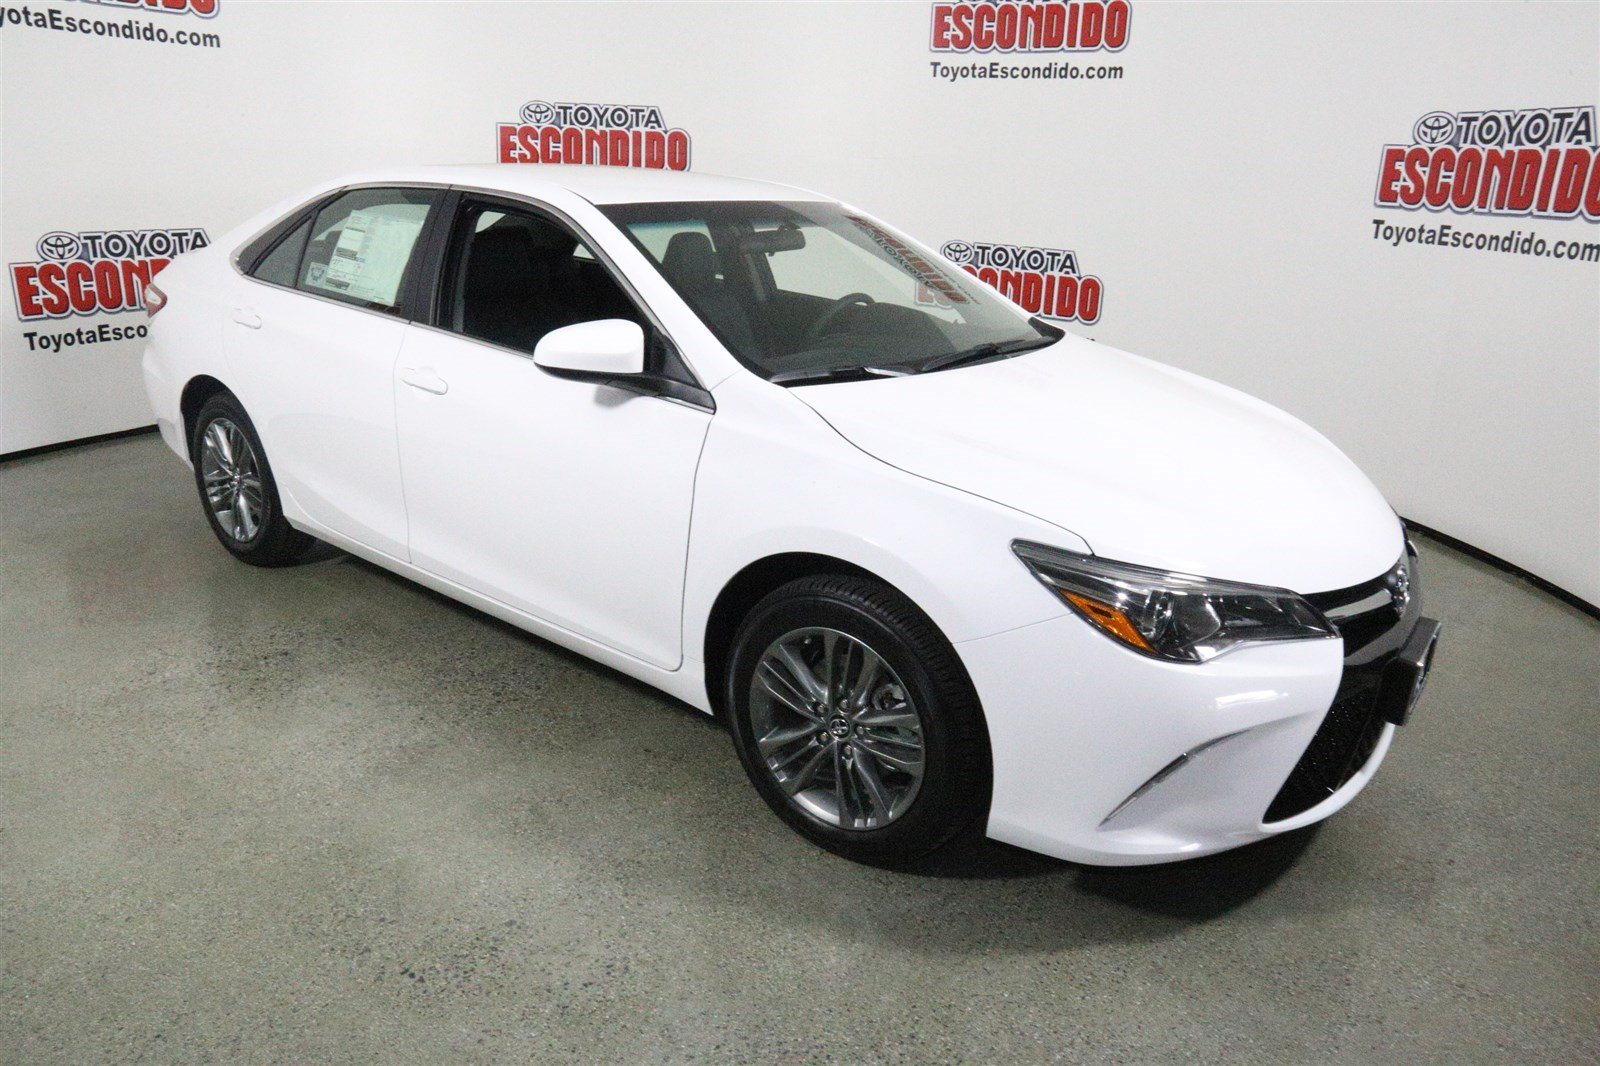 new 2017 toyota camry se 4dr car in escondido 1014228 toyota of escondido. Black Bedroom Furniture Sets. Home Design Ideas